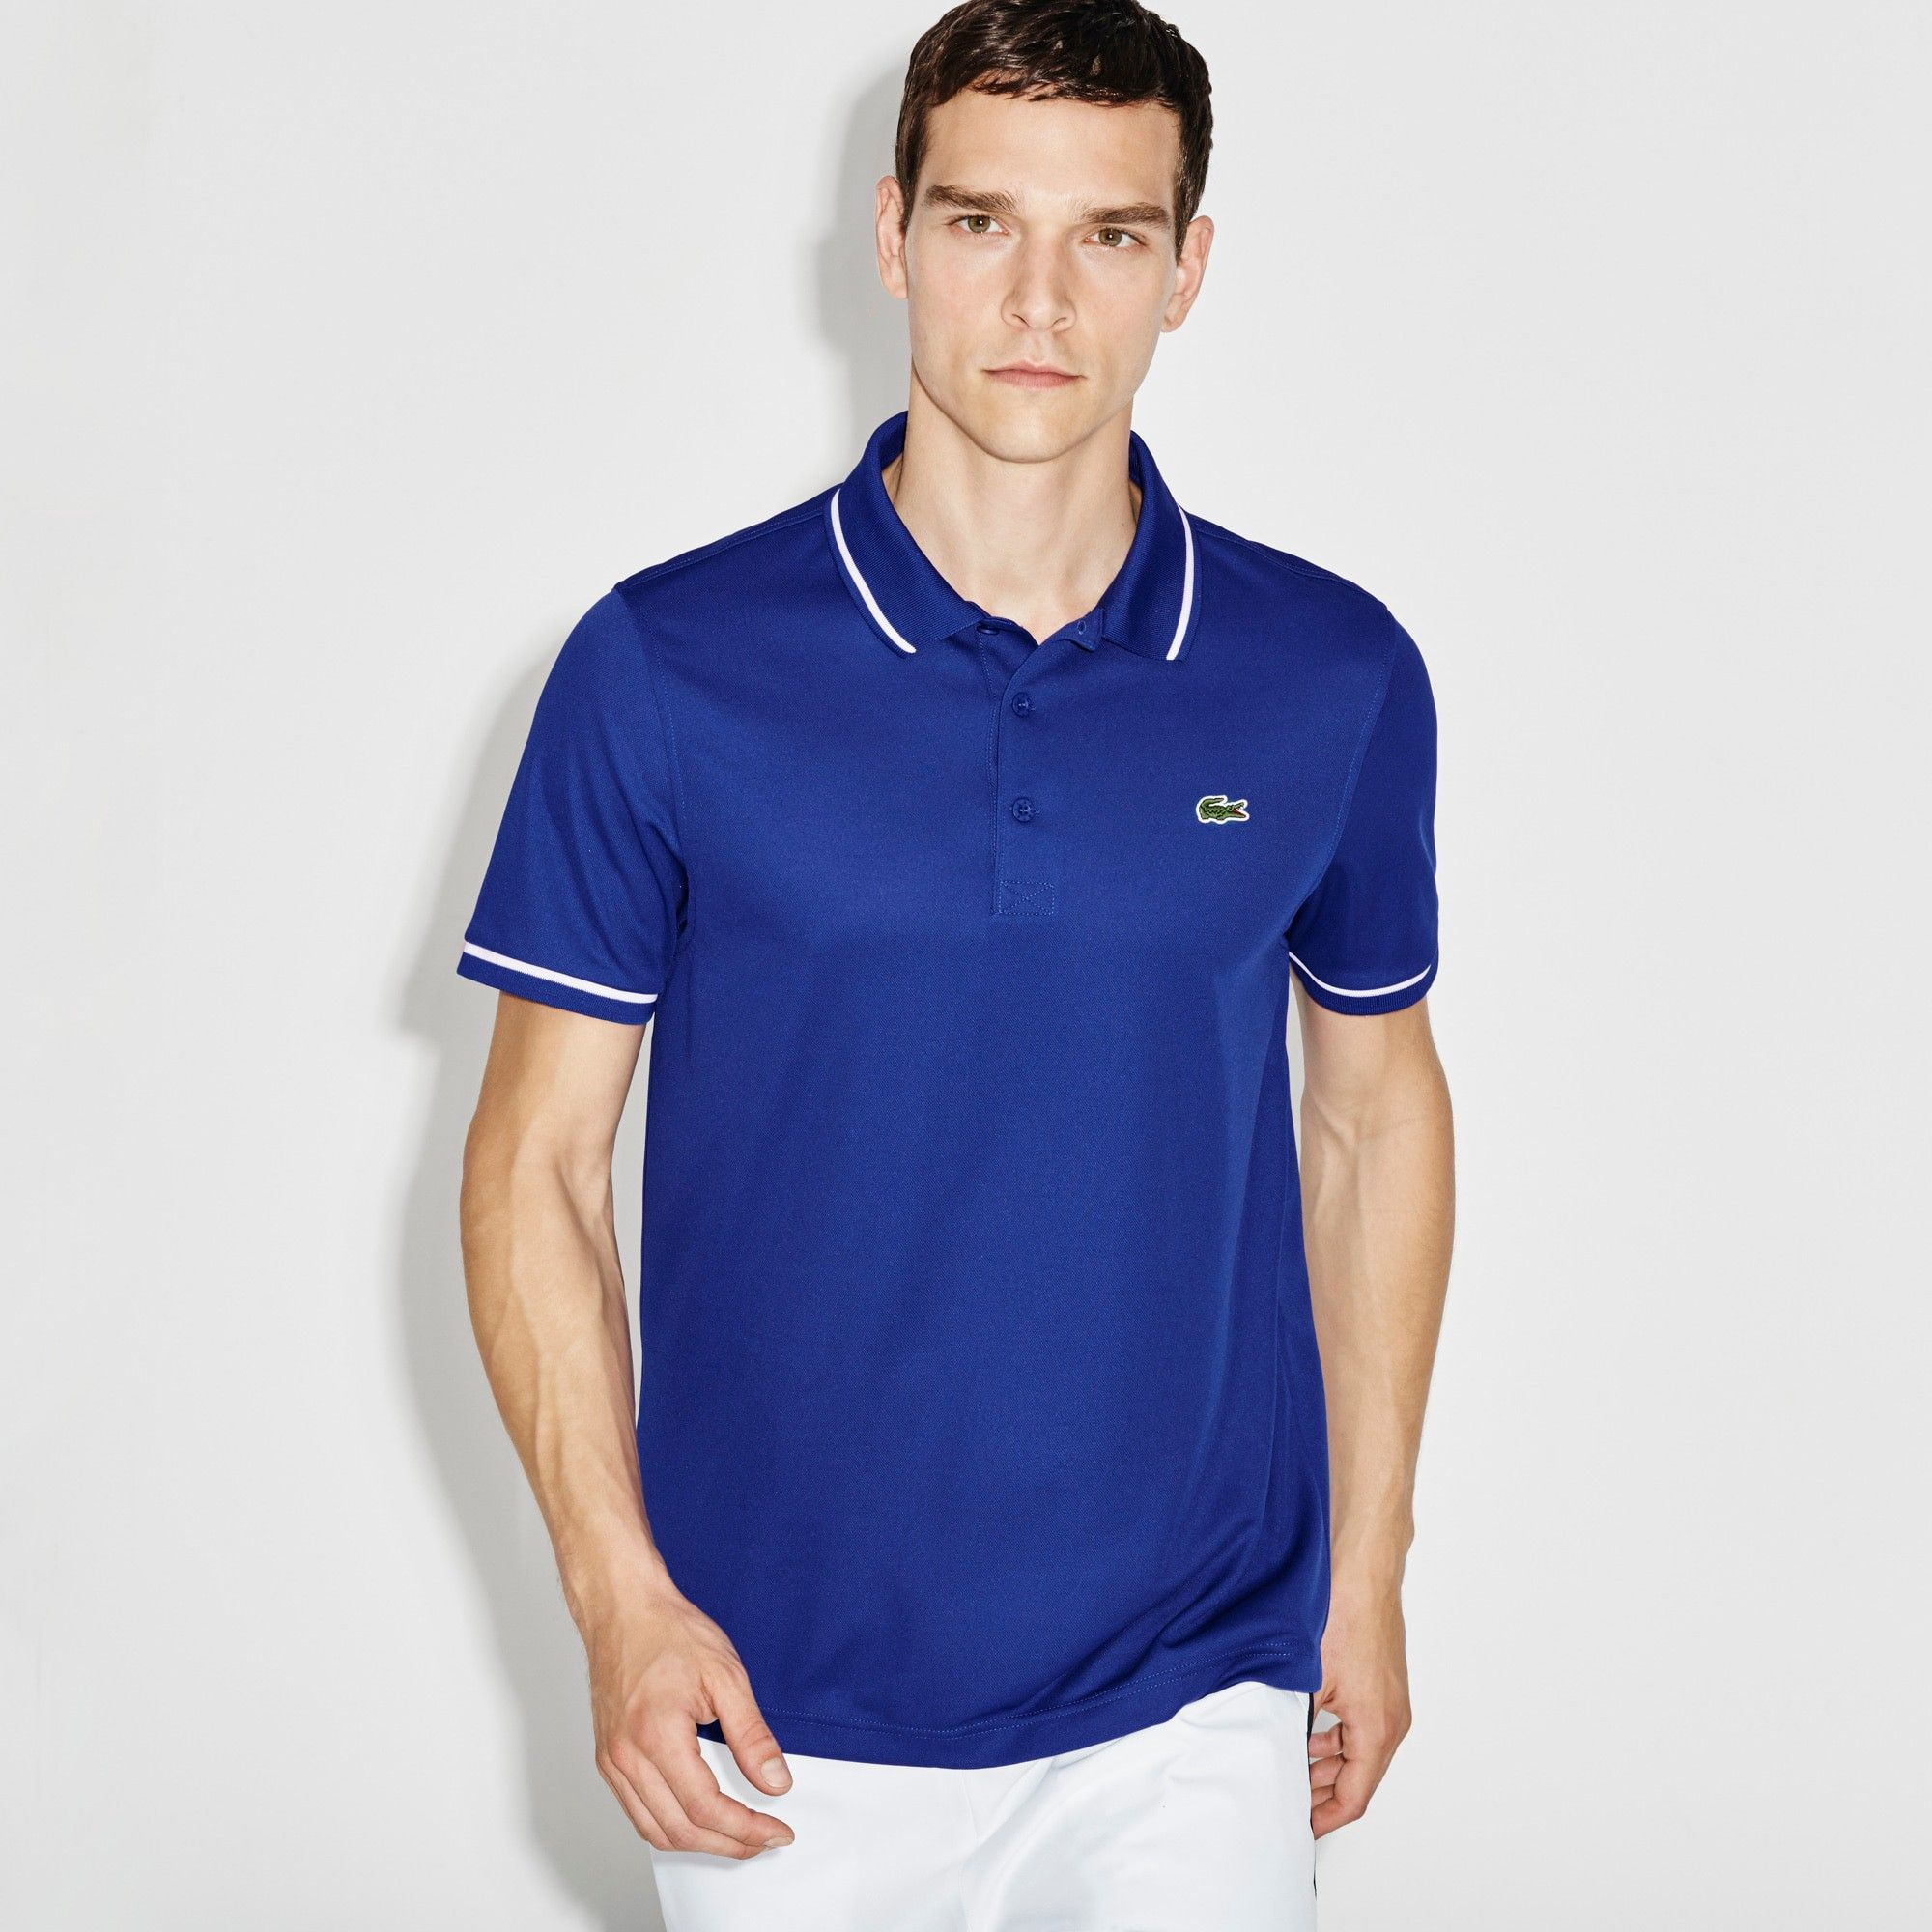 fcf8dedc91745 LACOSTE Men s SPORT Ultra-Dry Piping Tennis Polo Shirt - french royal  blue white.  lacoste  cloth